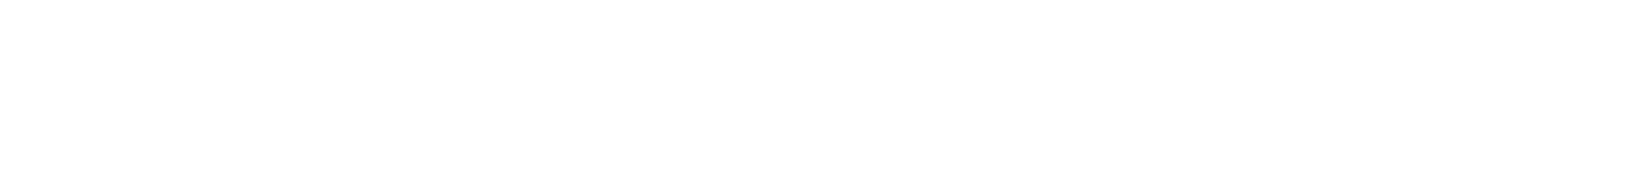 ejab: electronic journal of africana bibliography